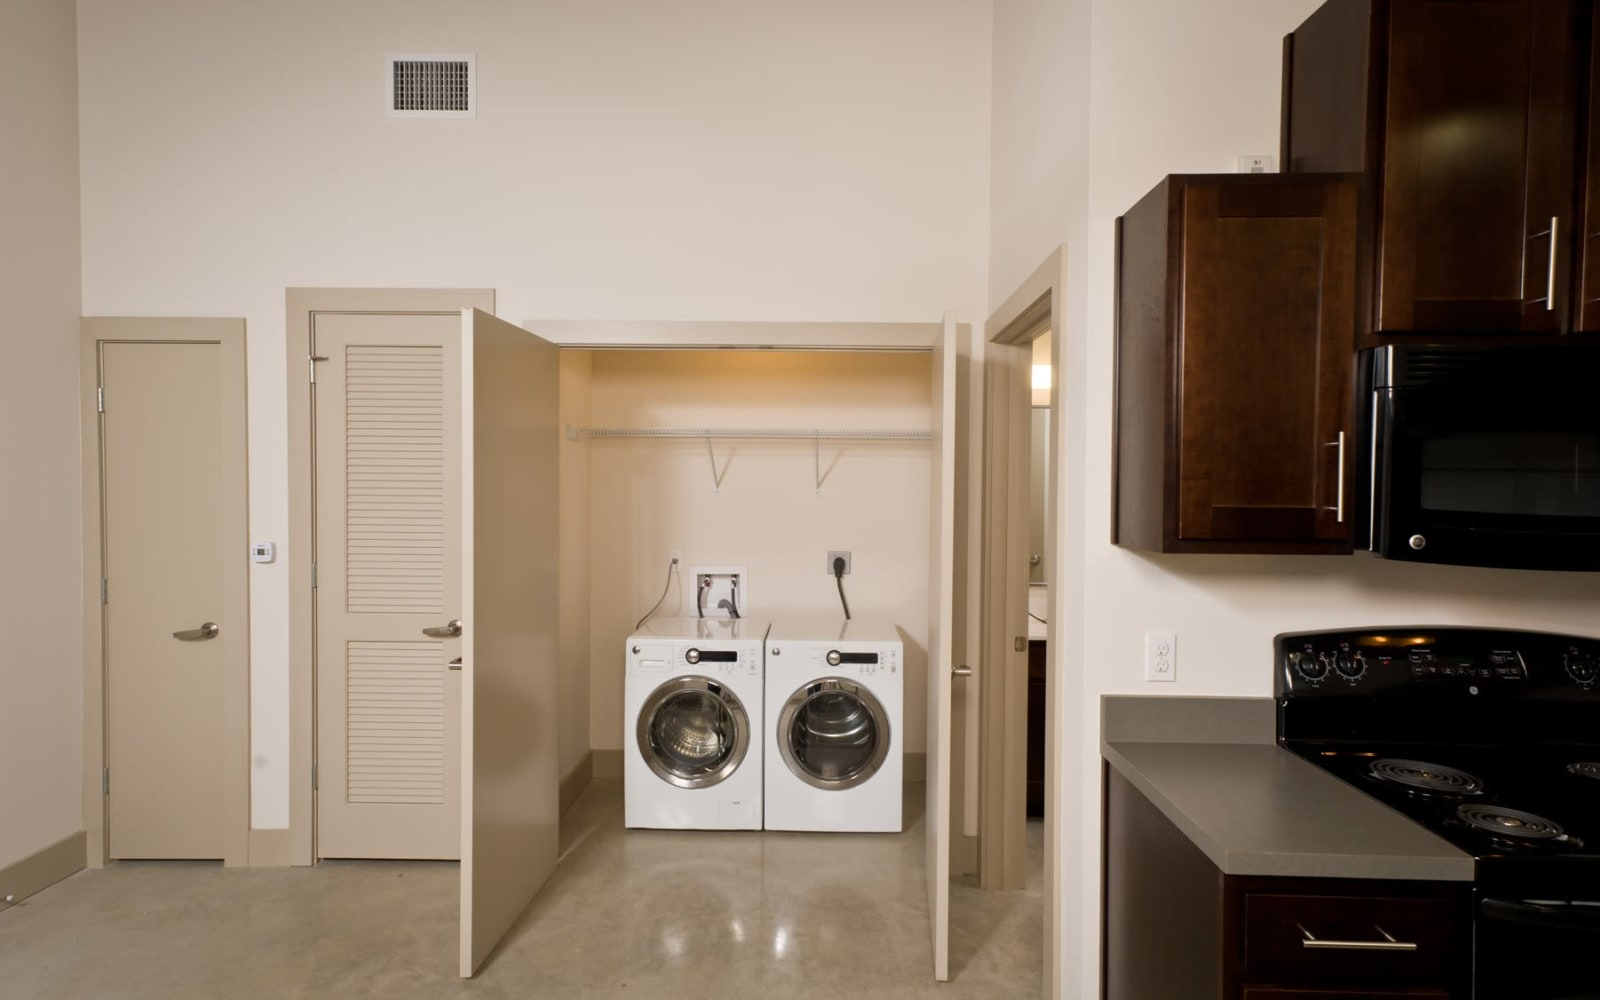 In-home washer and dryer at Gold Seal Lofts in New Orleans, Louisiana